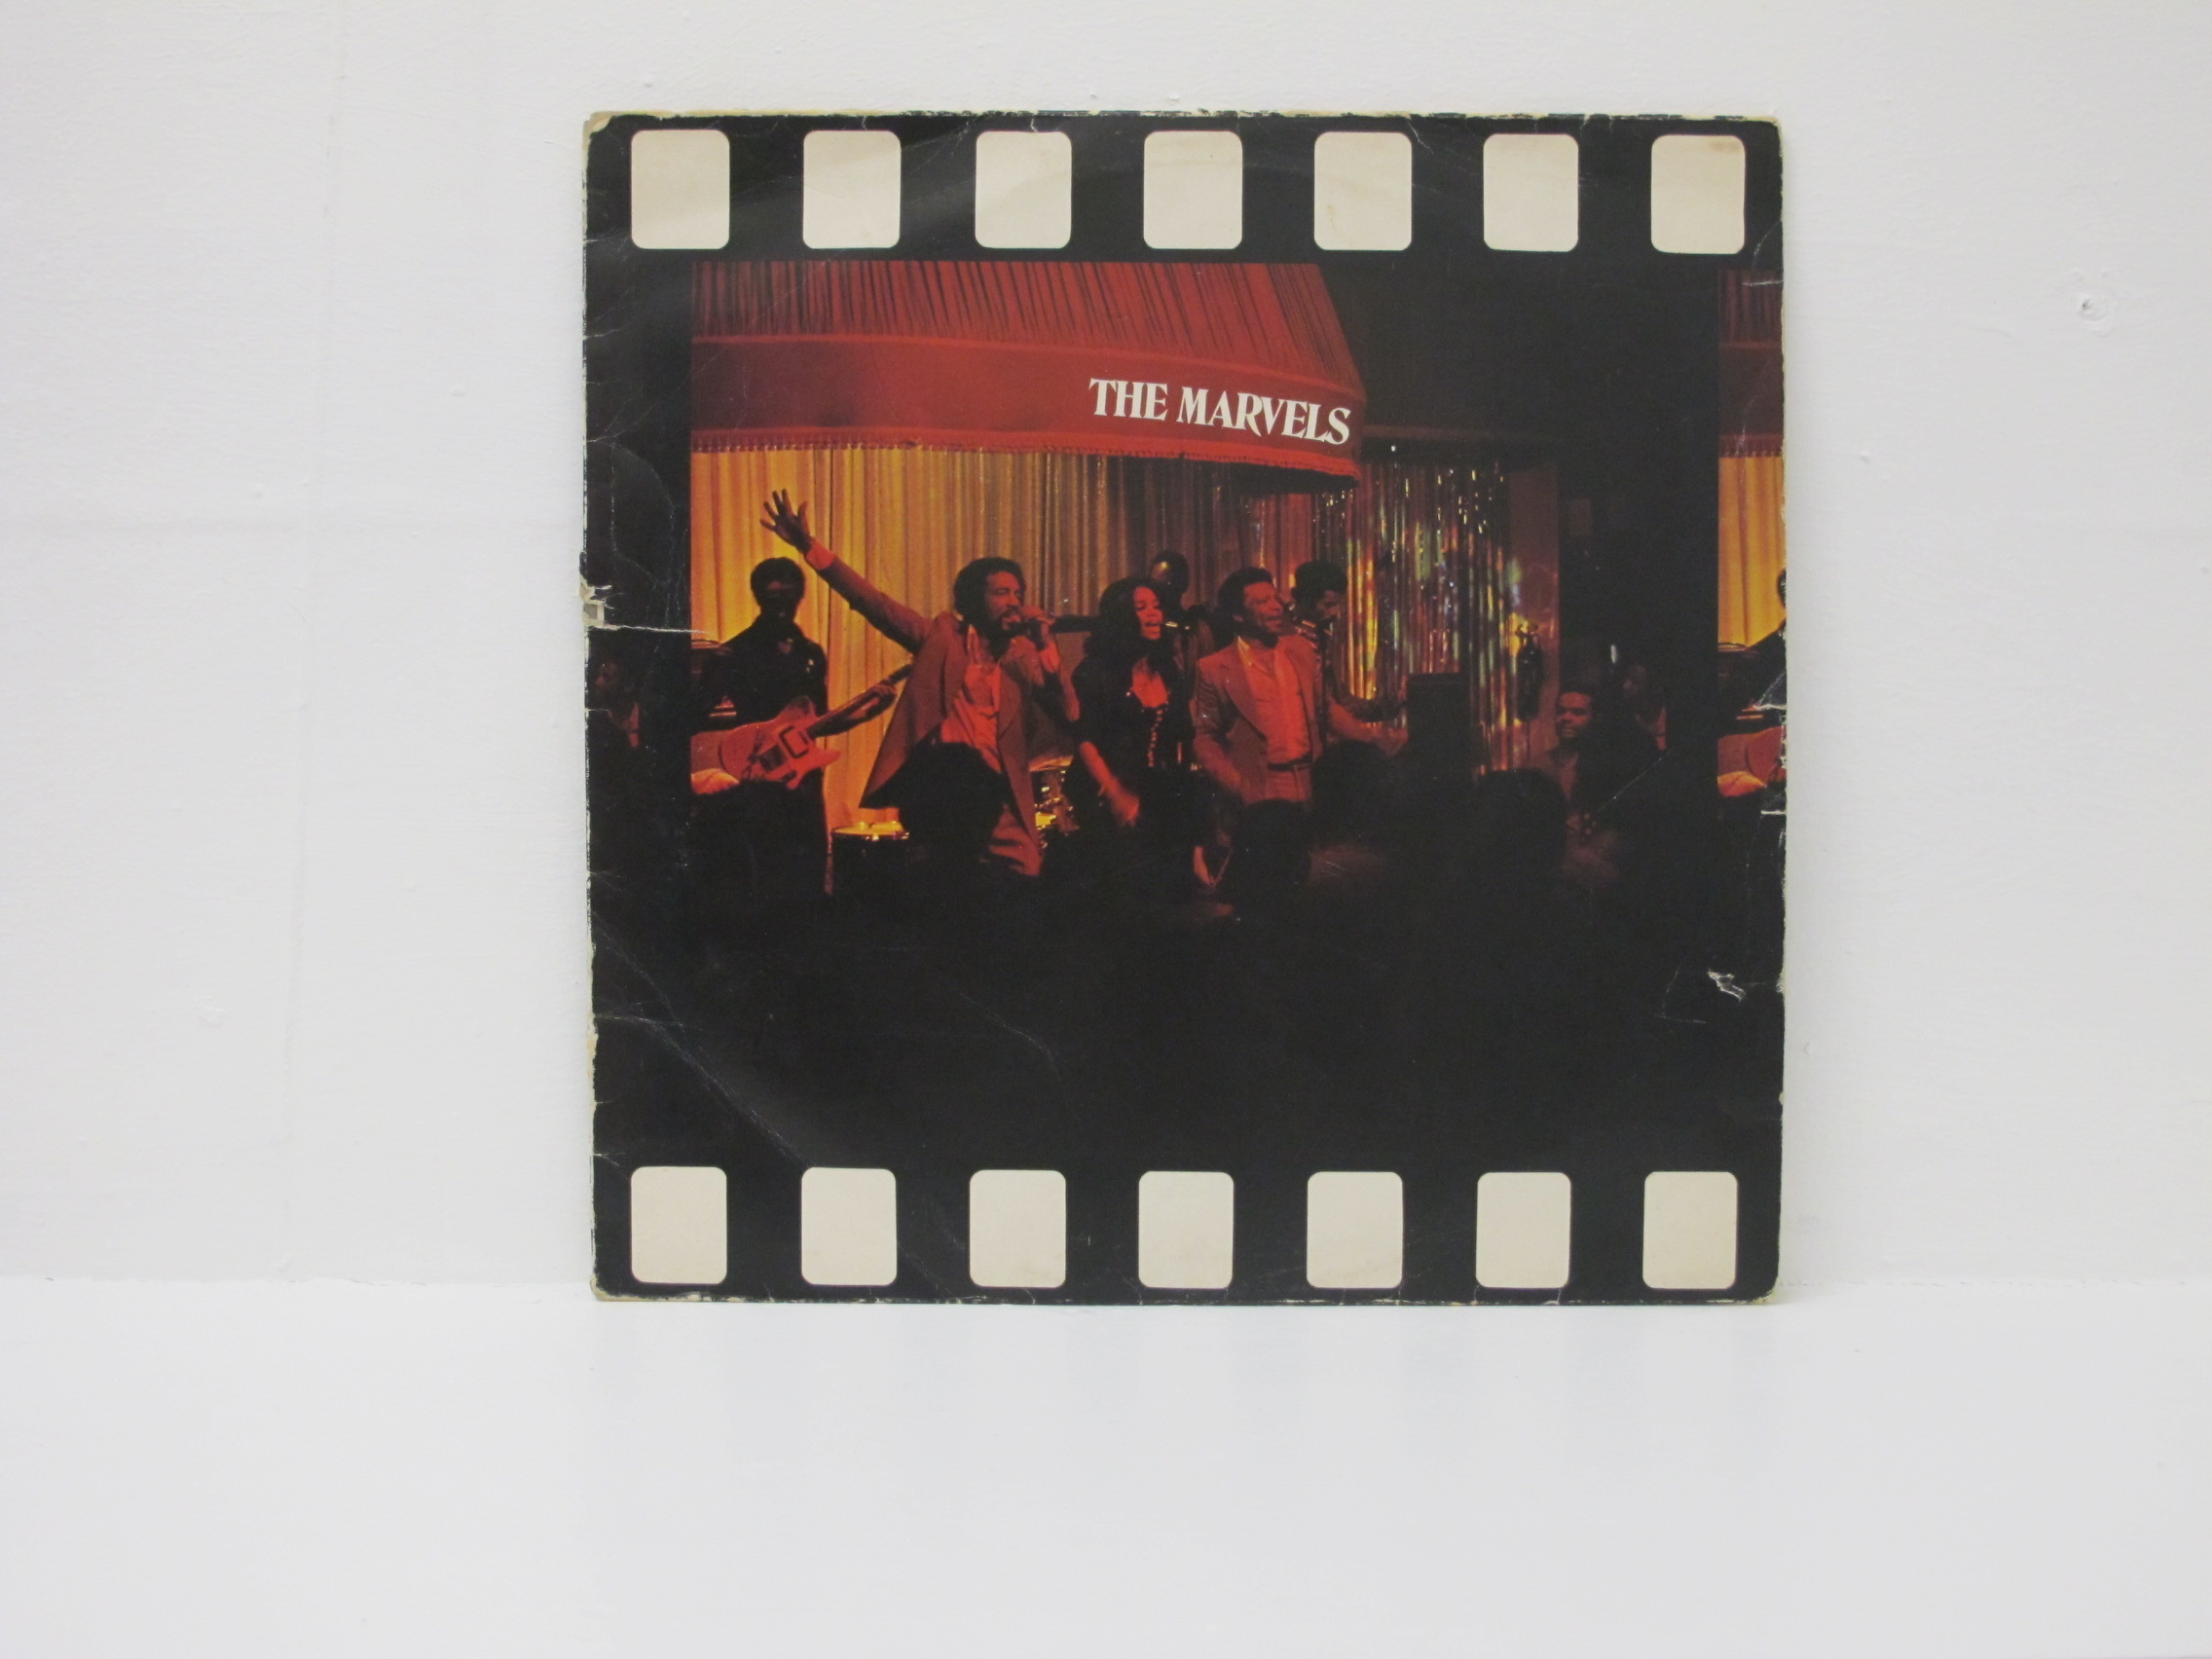 The Marvels - The Marvels